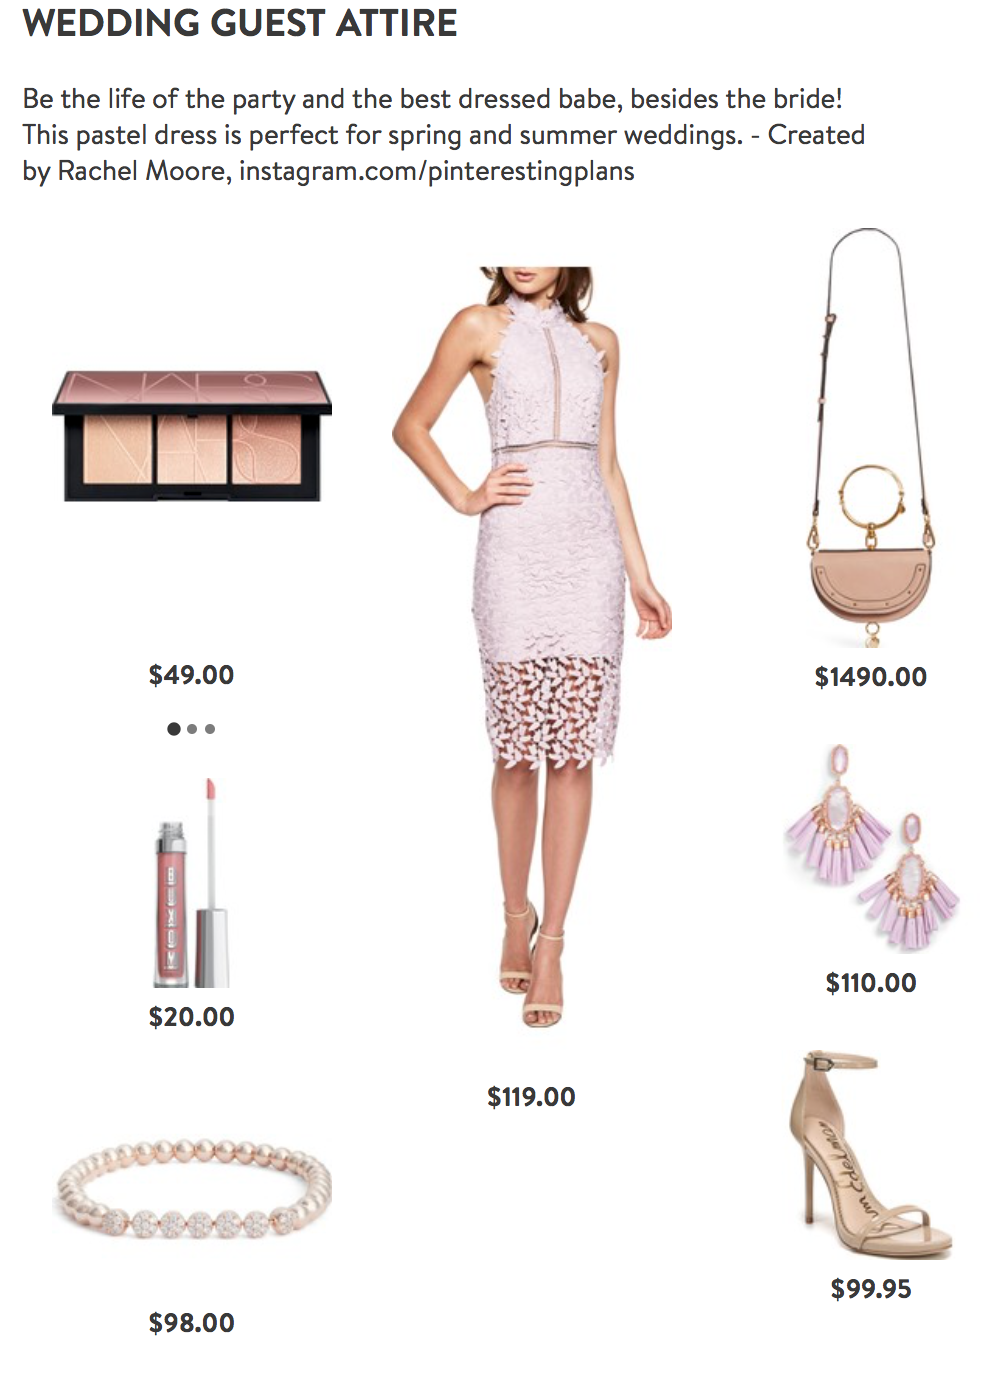 Spring Wedding Guest Dress Outfit from Nordstrom on Pinteresting Plans Fashion Blog